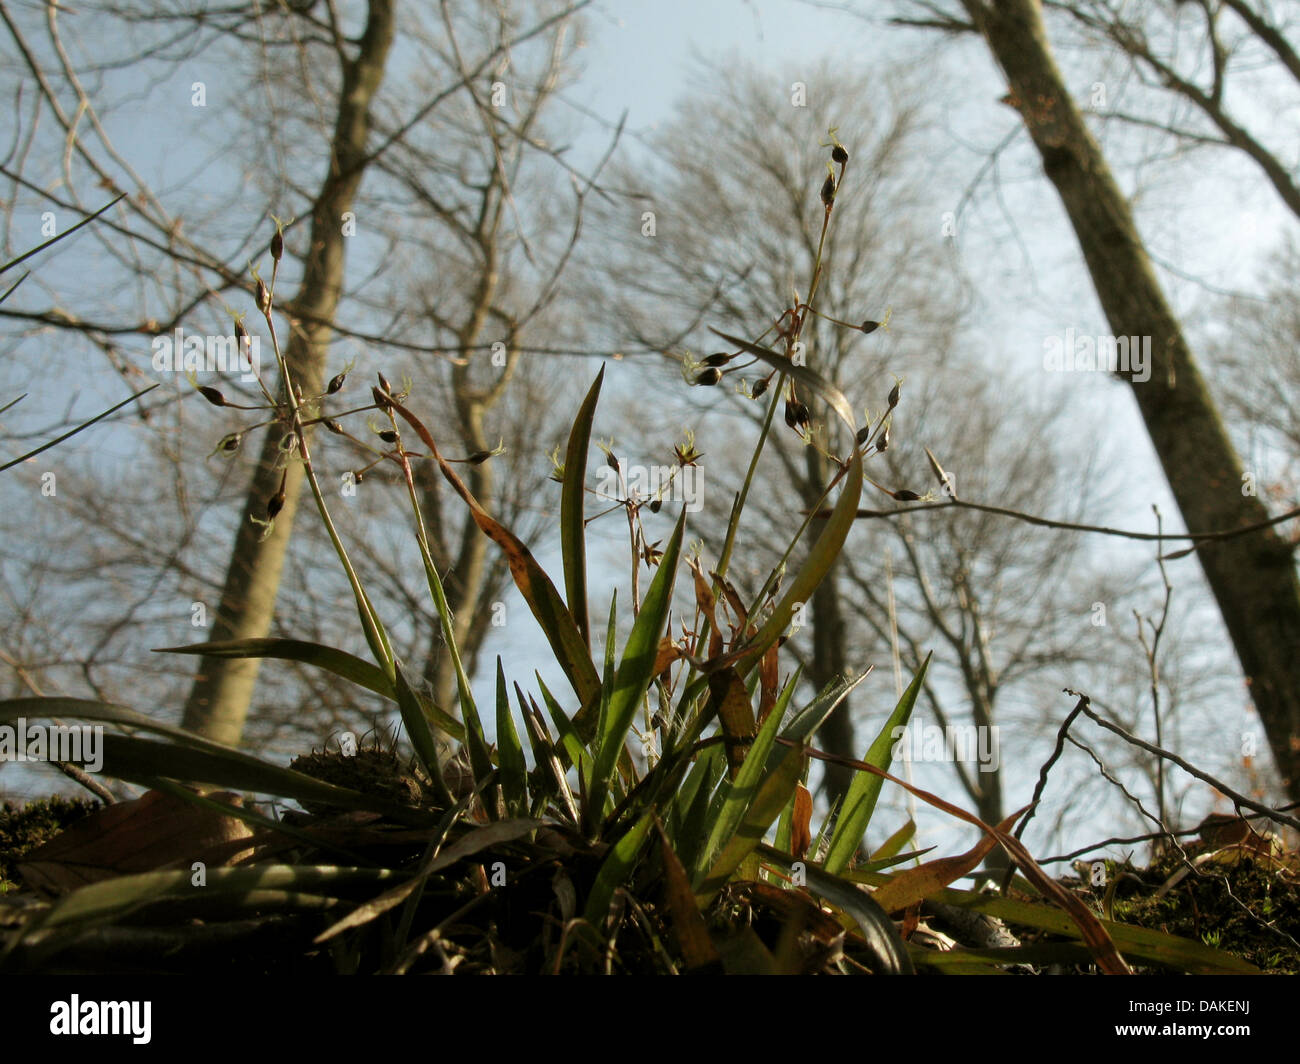 hairy wood-rush (Luzula pilosa), blooming in a spring wood, Germany, Lower Saxony - Stock Image